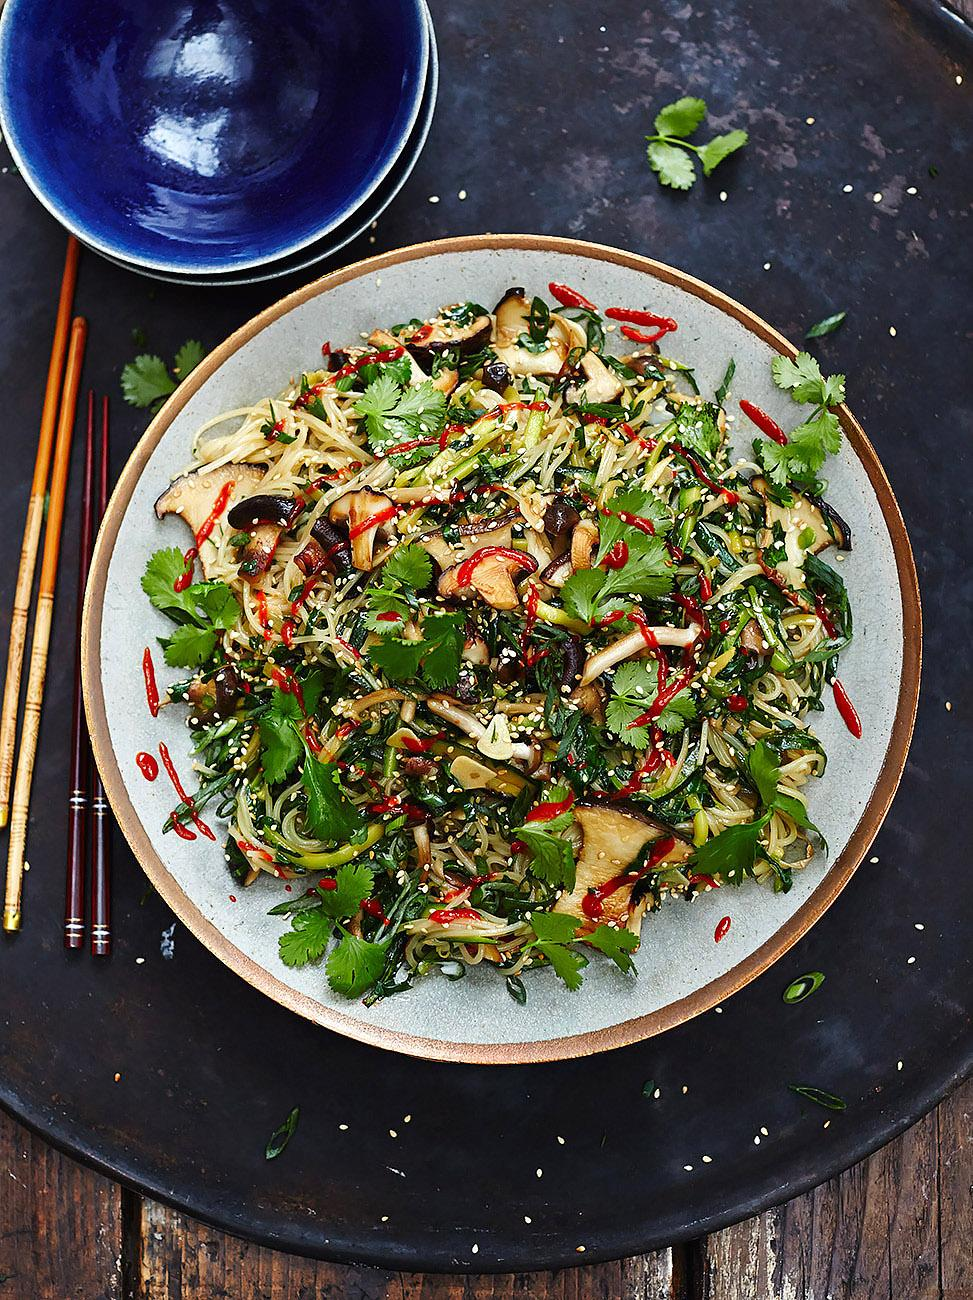 Healthy ways to use greens jamie oliver for Garden fresh chinese vegan cuisine